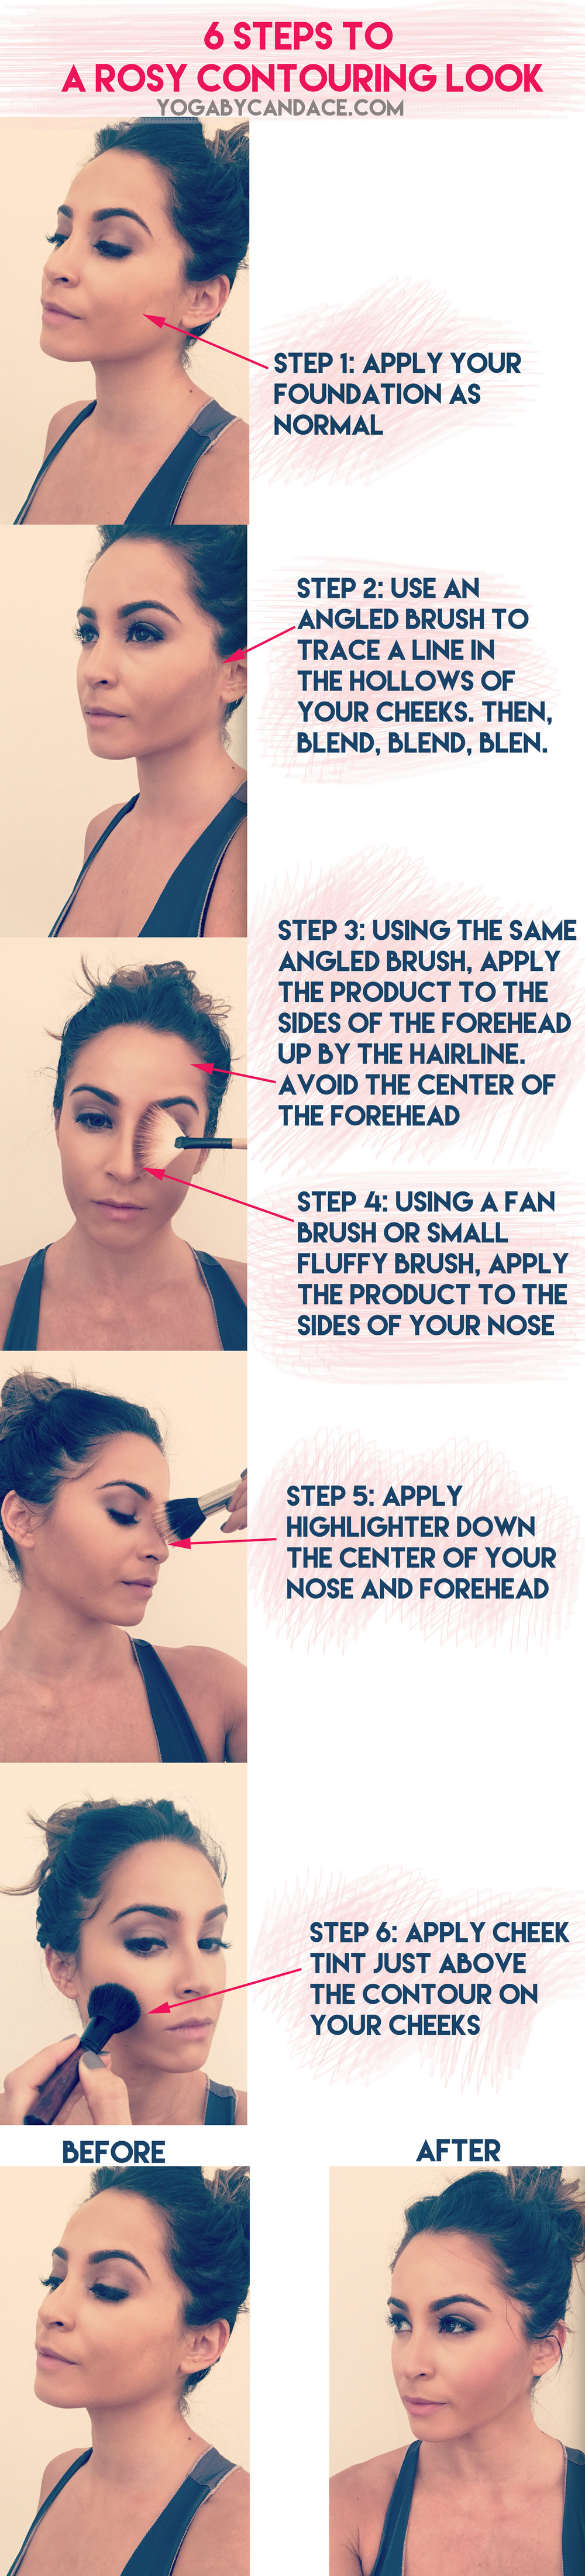 Pin now, practice later: 6 steps to rosy contour look Using: Tata Harper contour, highlighter and cheek tint